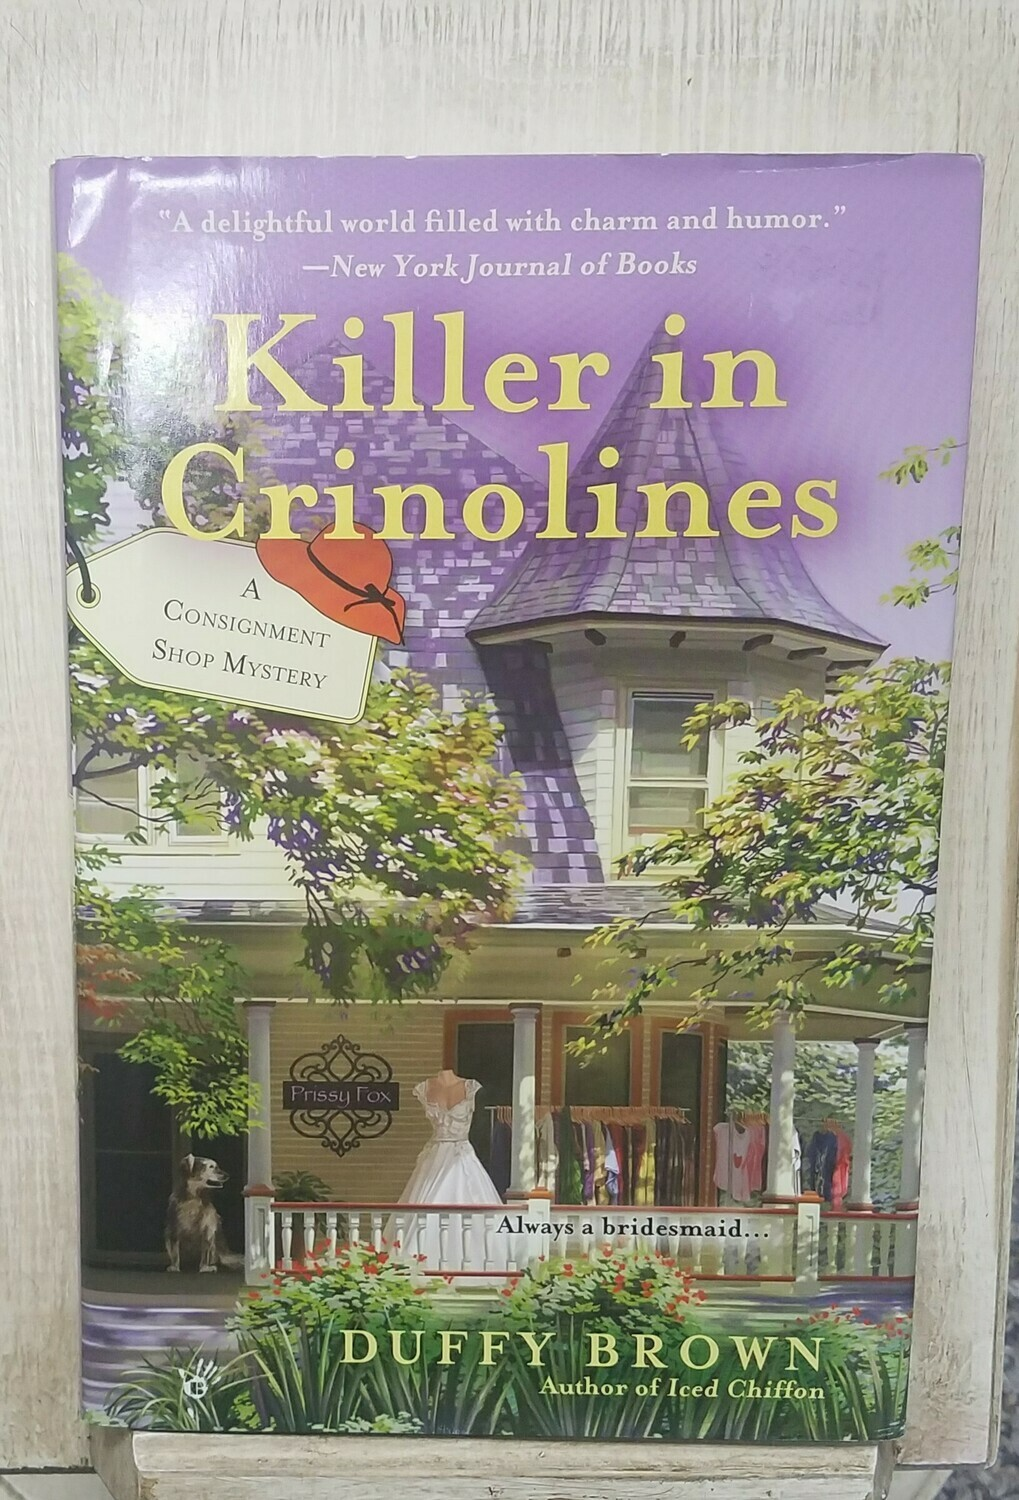 Killer in Crinolines by Duffy Brown